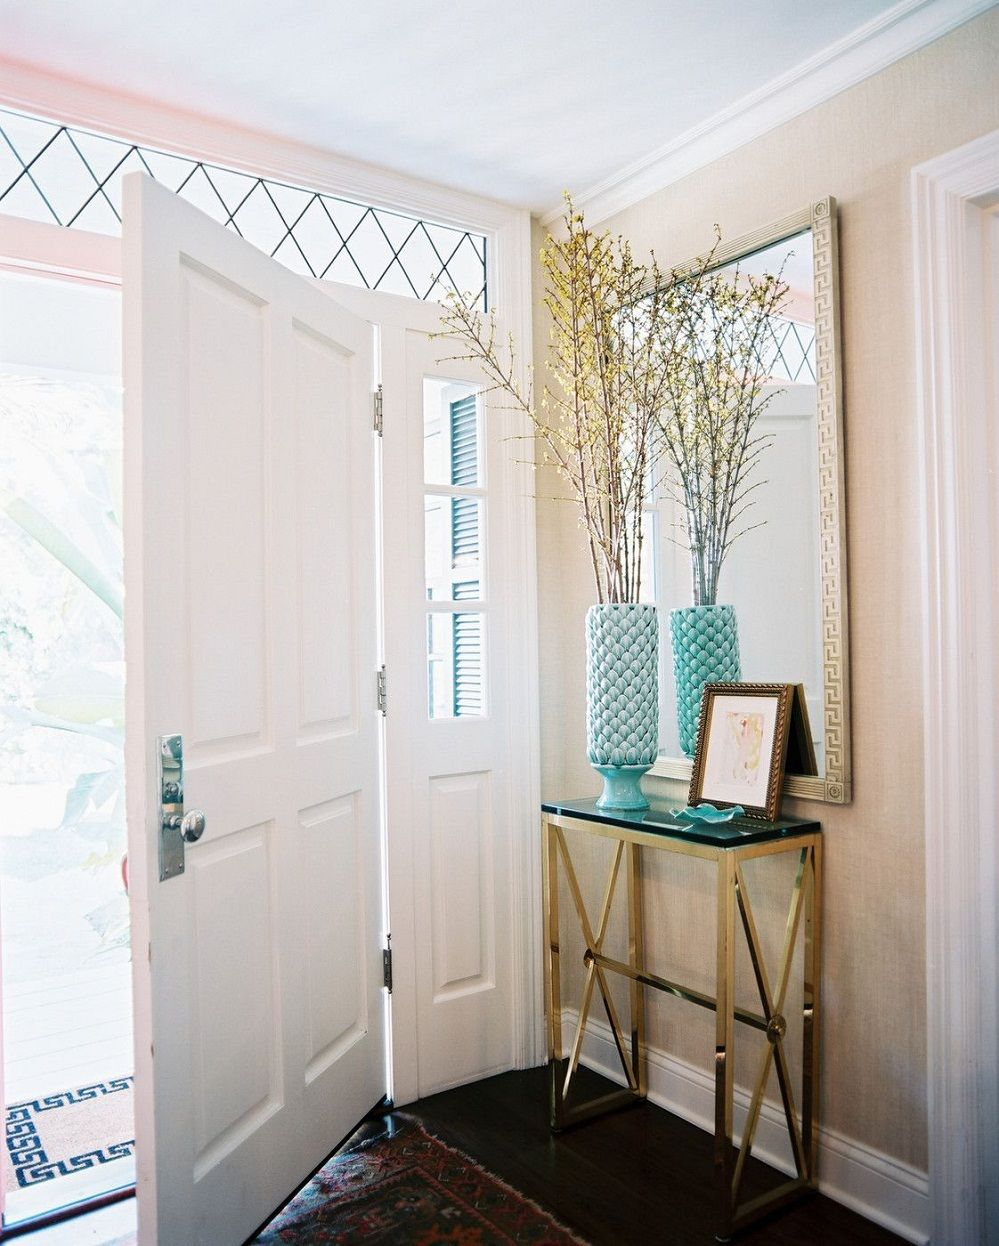 Entry Tables For Small Spaces 27+ small entryway ideas for small space with decorating ideas